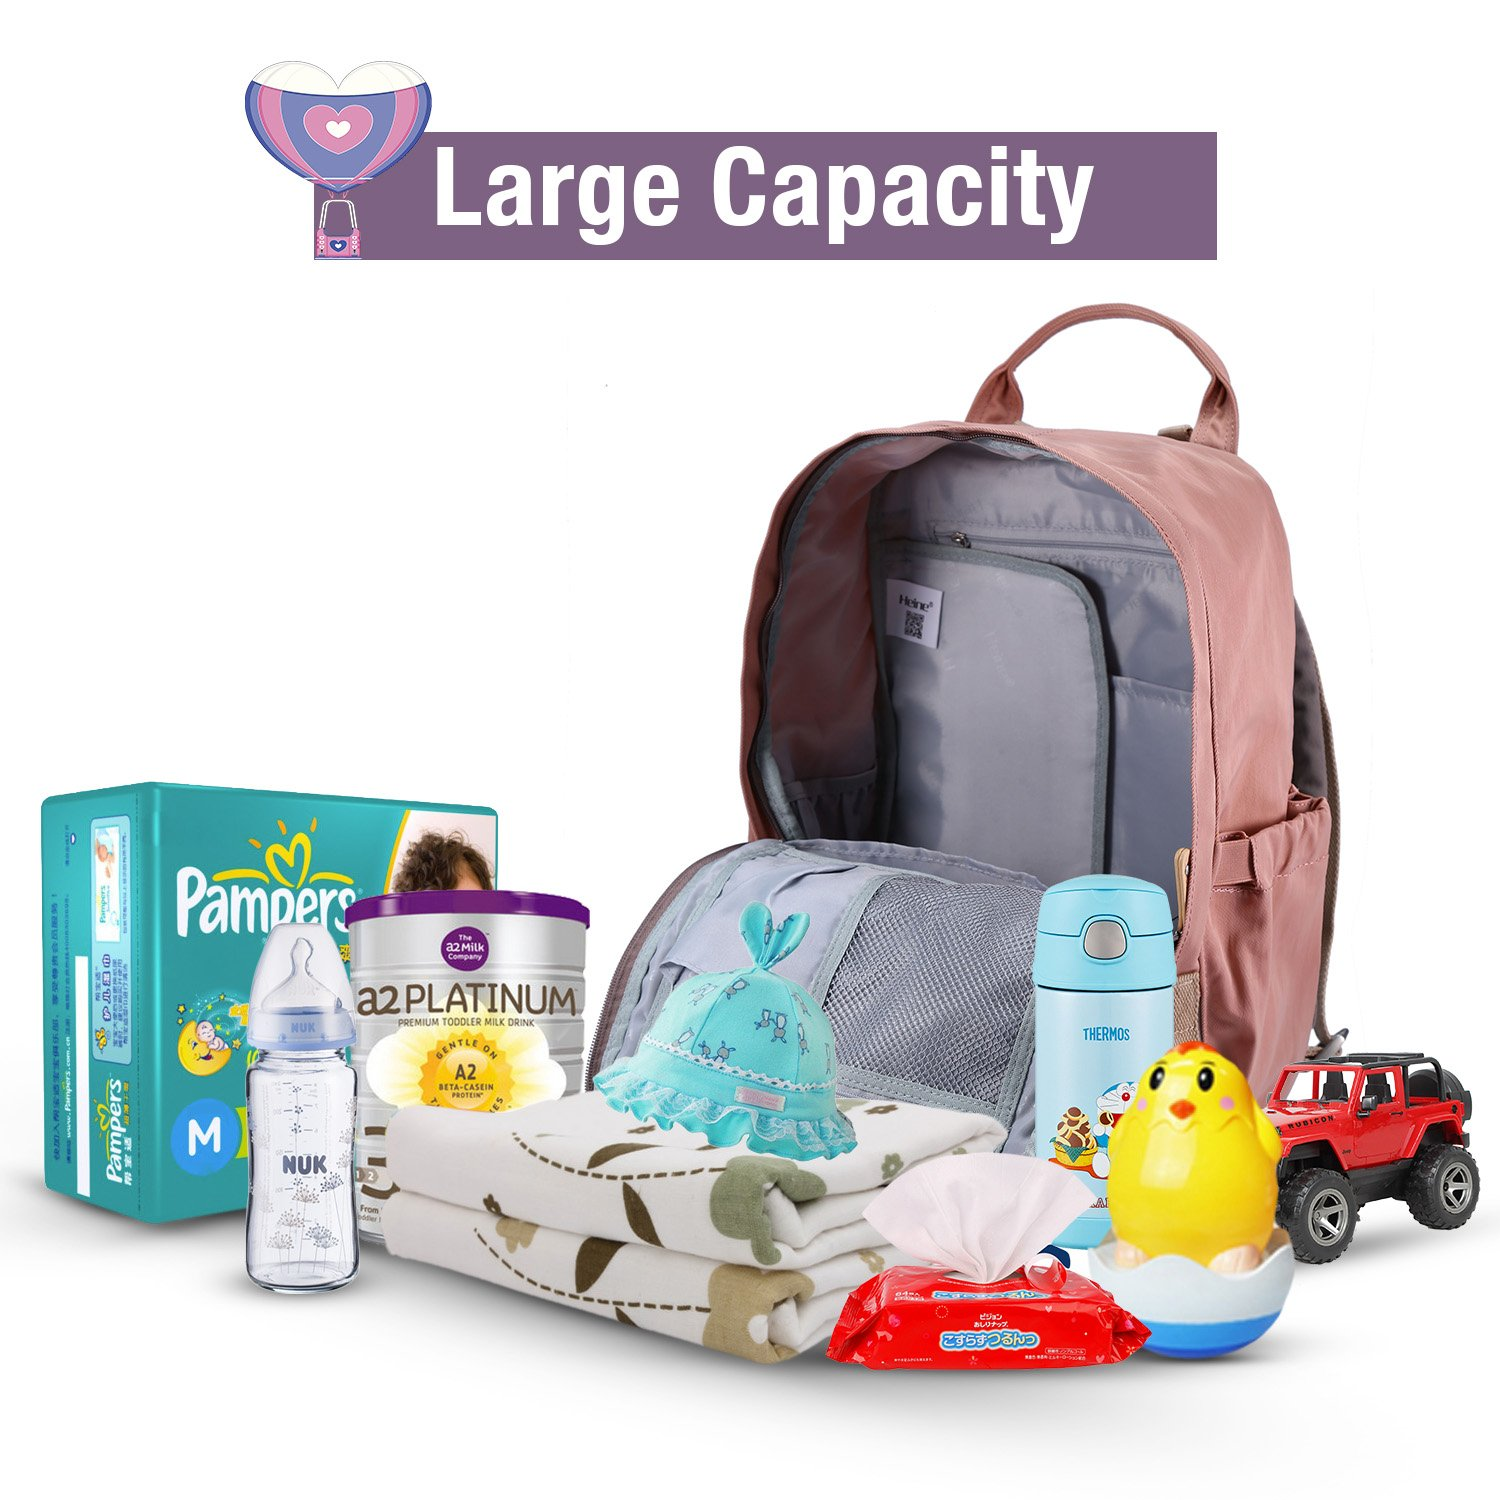 Diaper Backpack Multi-Function Diaper Bag Mother Bag Backpack Nappy Bag with Insulated Bottle Pockets,Large Capacity Waterproof Mummy Handbag Traveling Backpack(Pink)